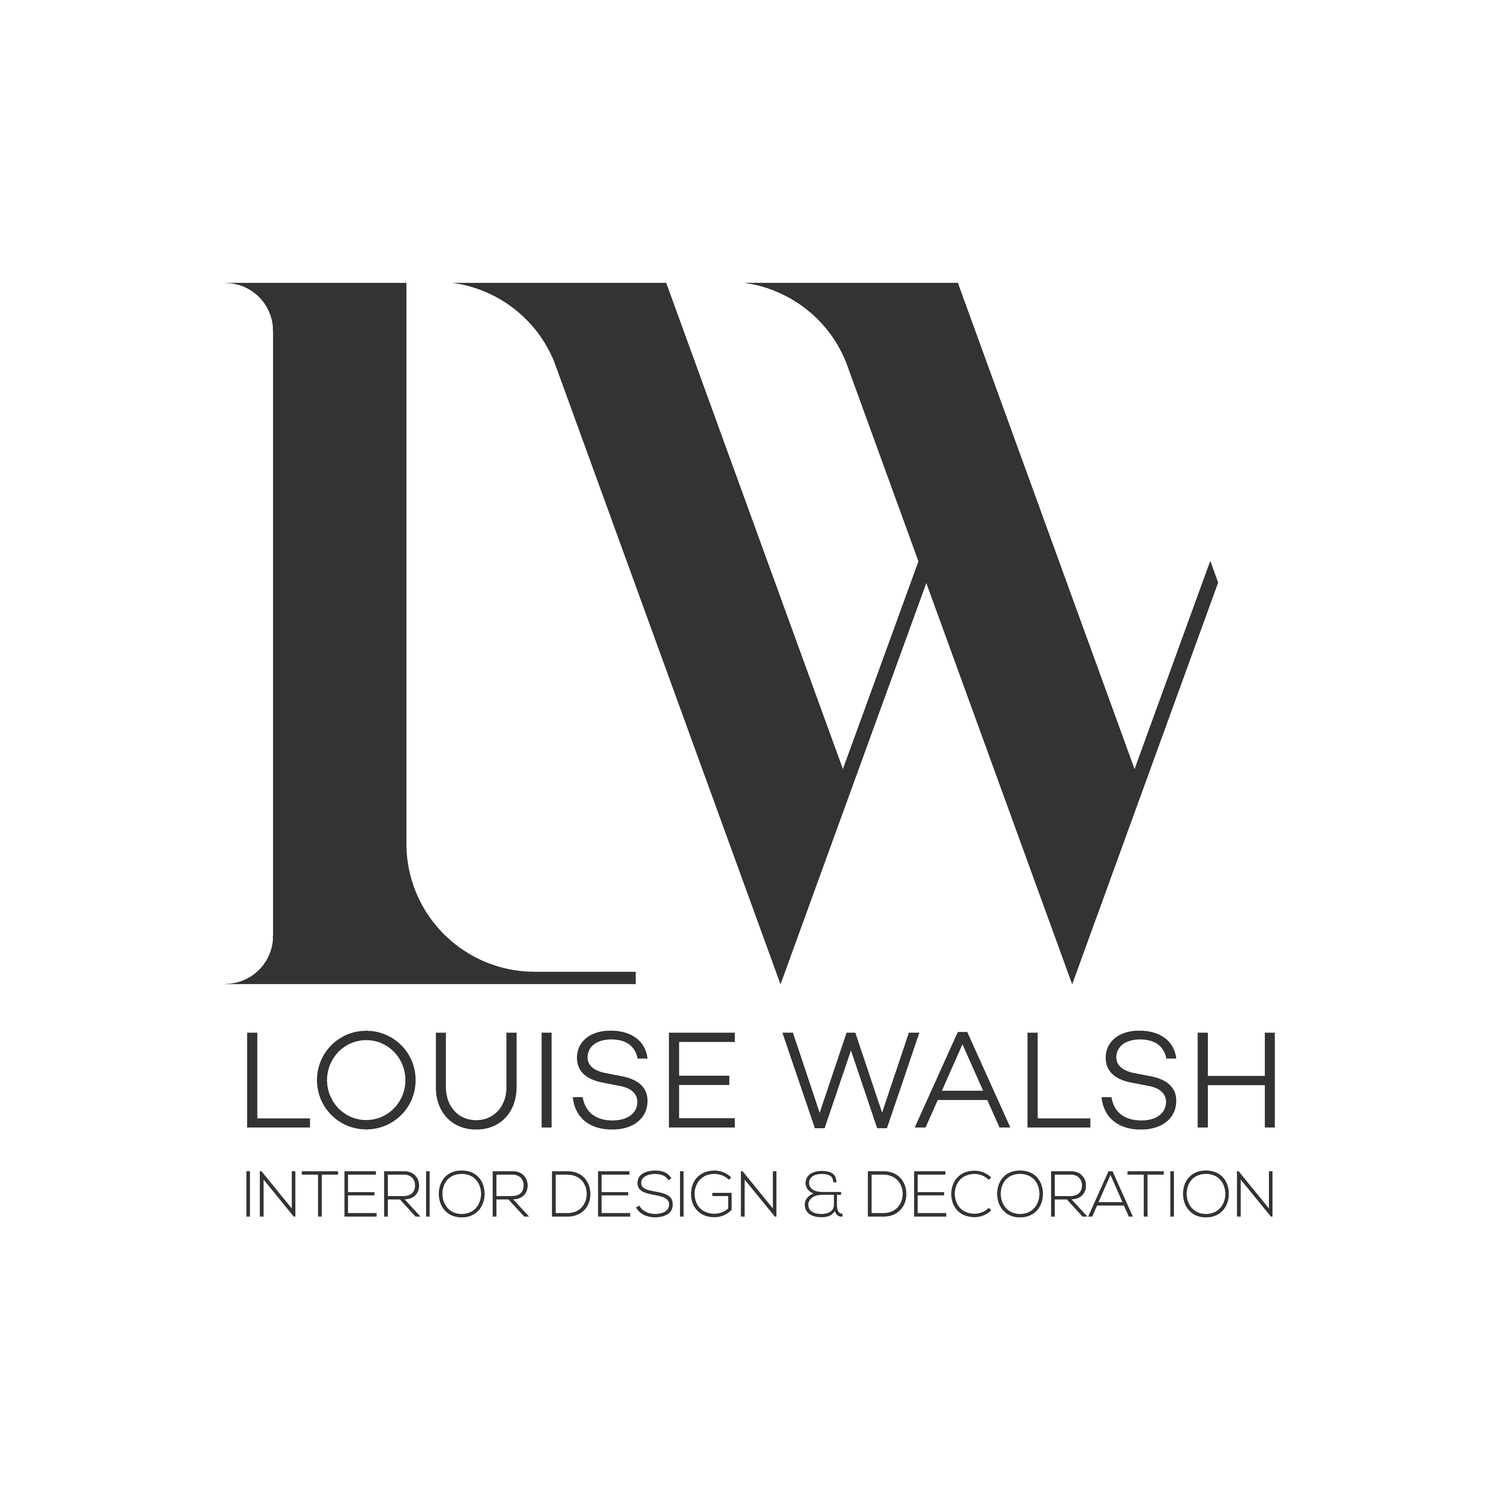 Louise Walsh